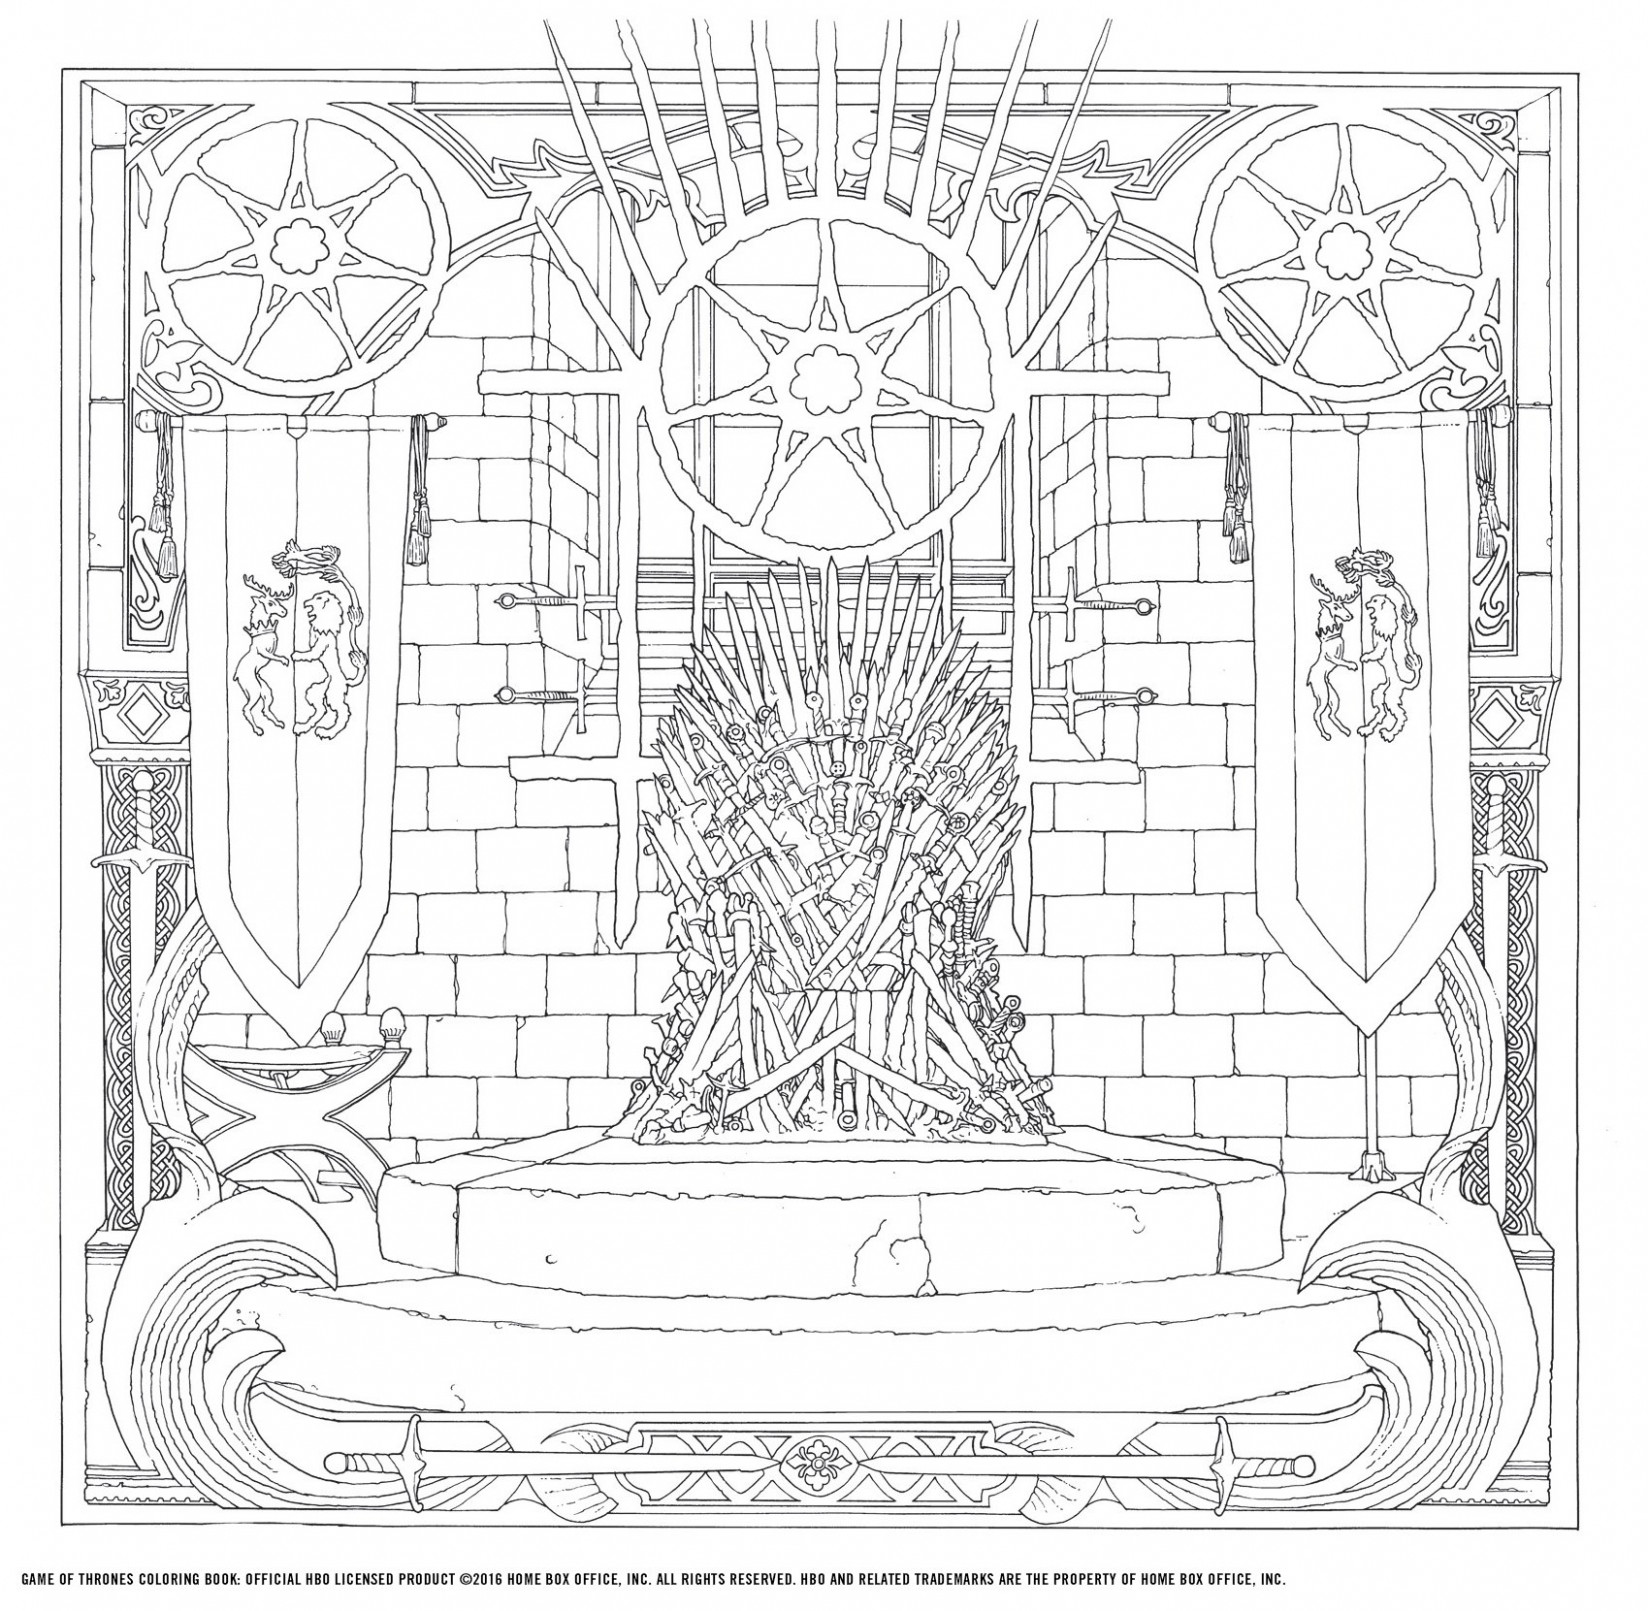 HBO's Game of Thrones Coloring Book: HBO: 16: Amazon.com ..